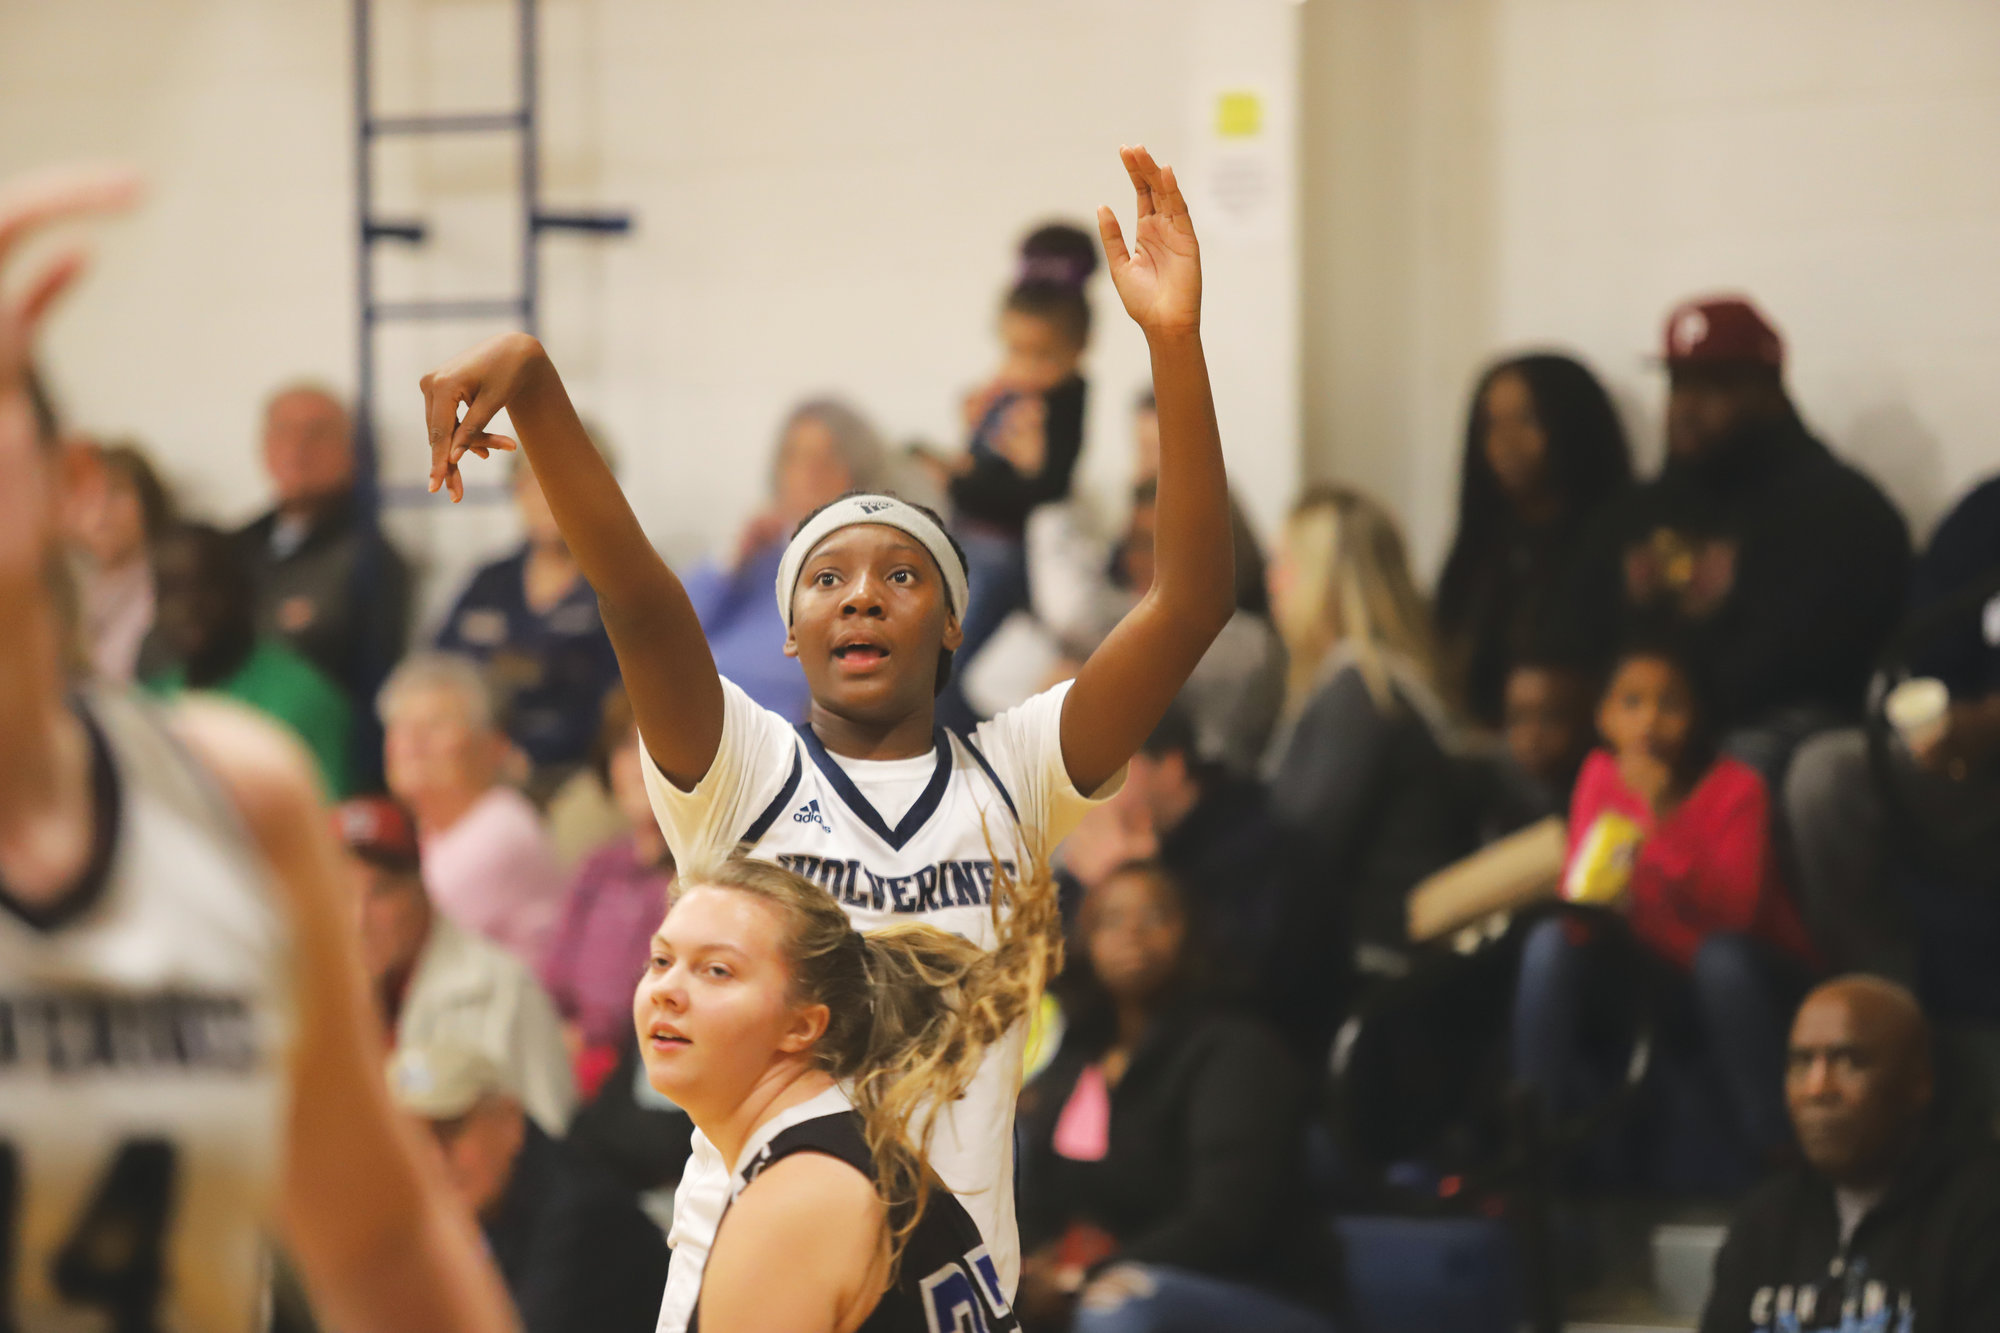 East Clarendon's Talaysia Cooper, center, will look to lead the Lady Wolverines on another deep postseason run this year after the team made it to the Final Four in 2A last season.